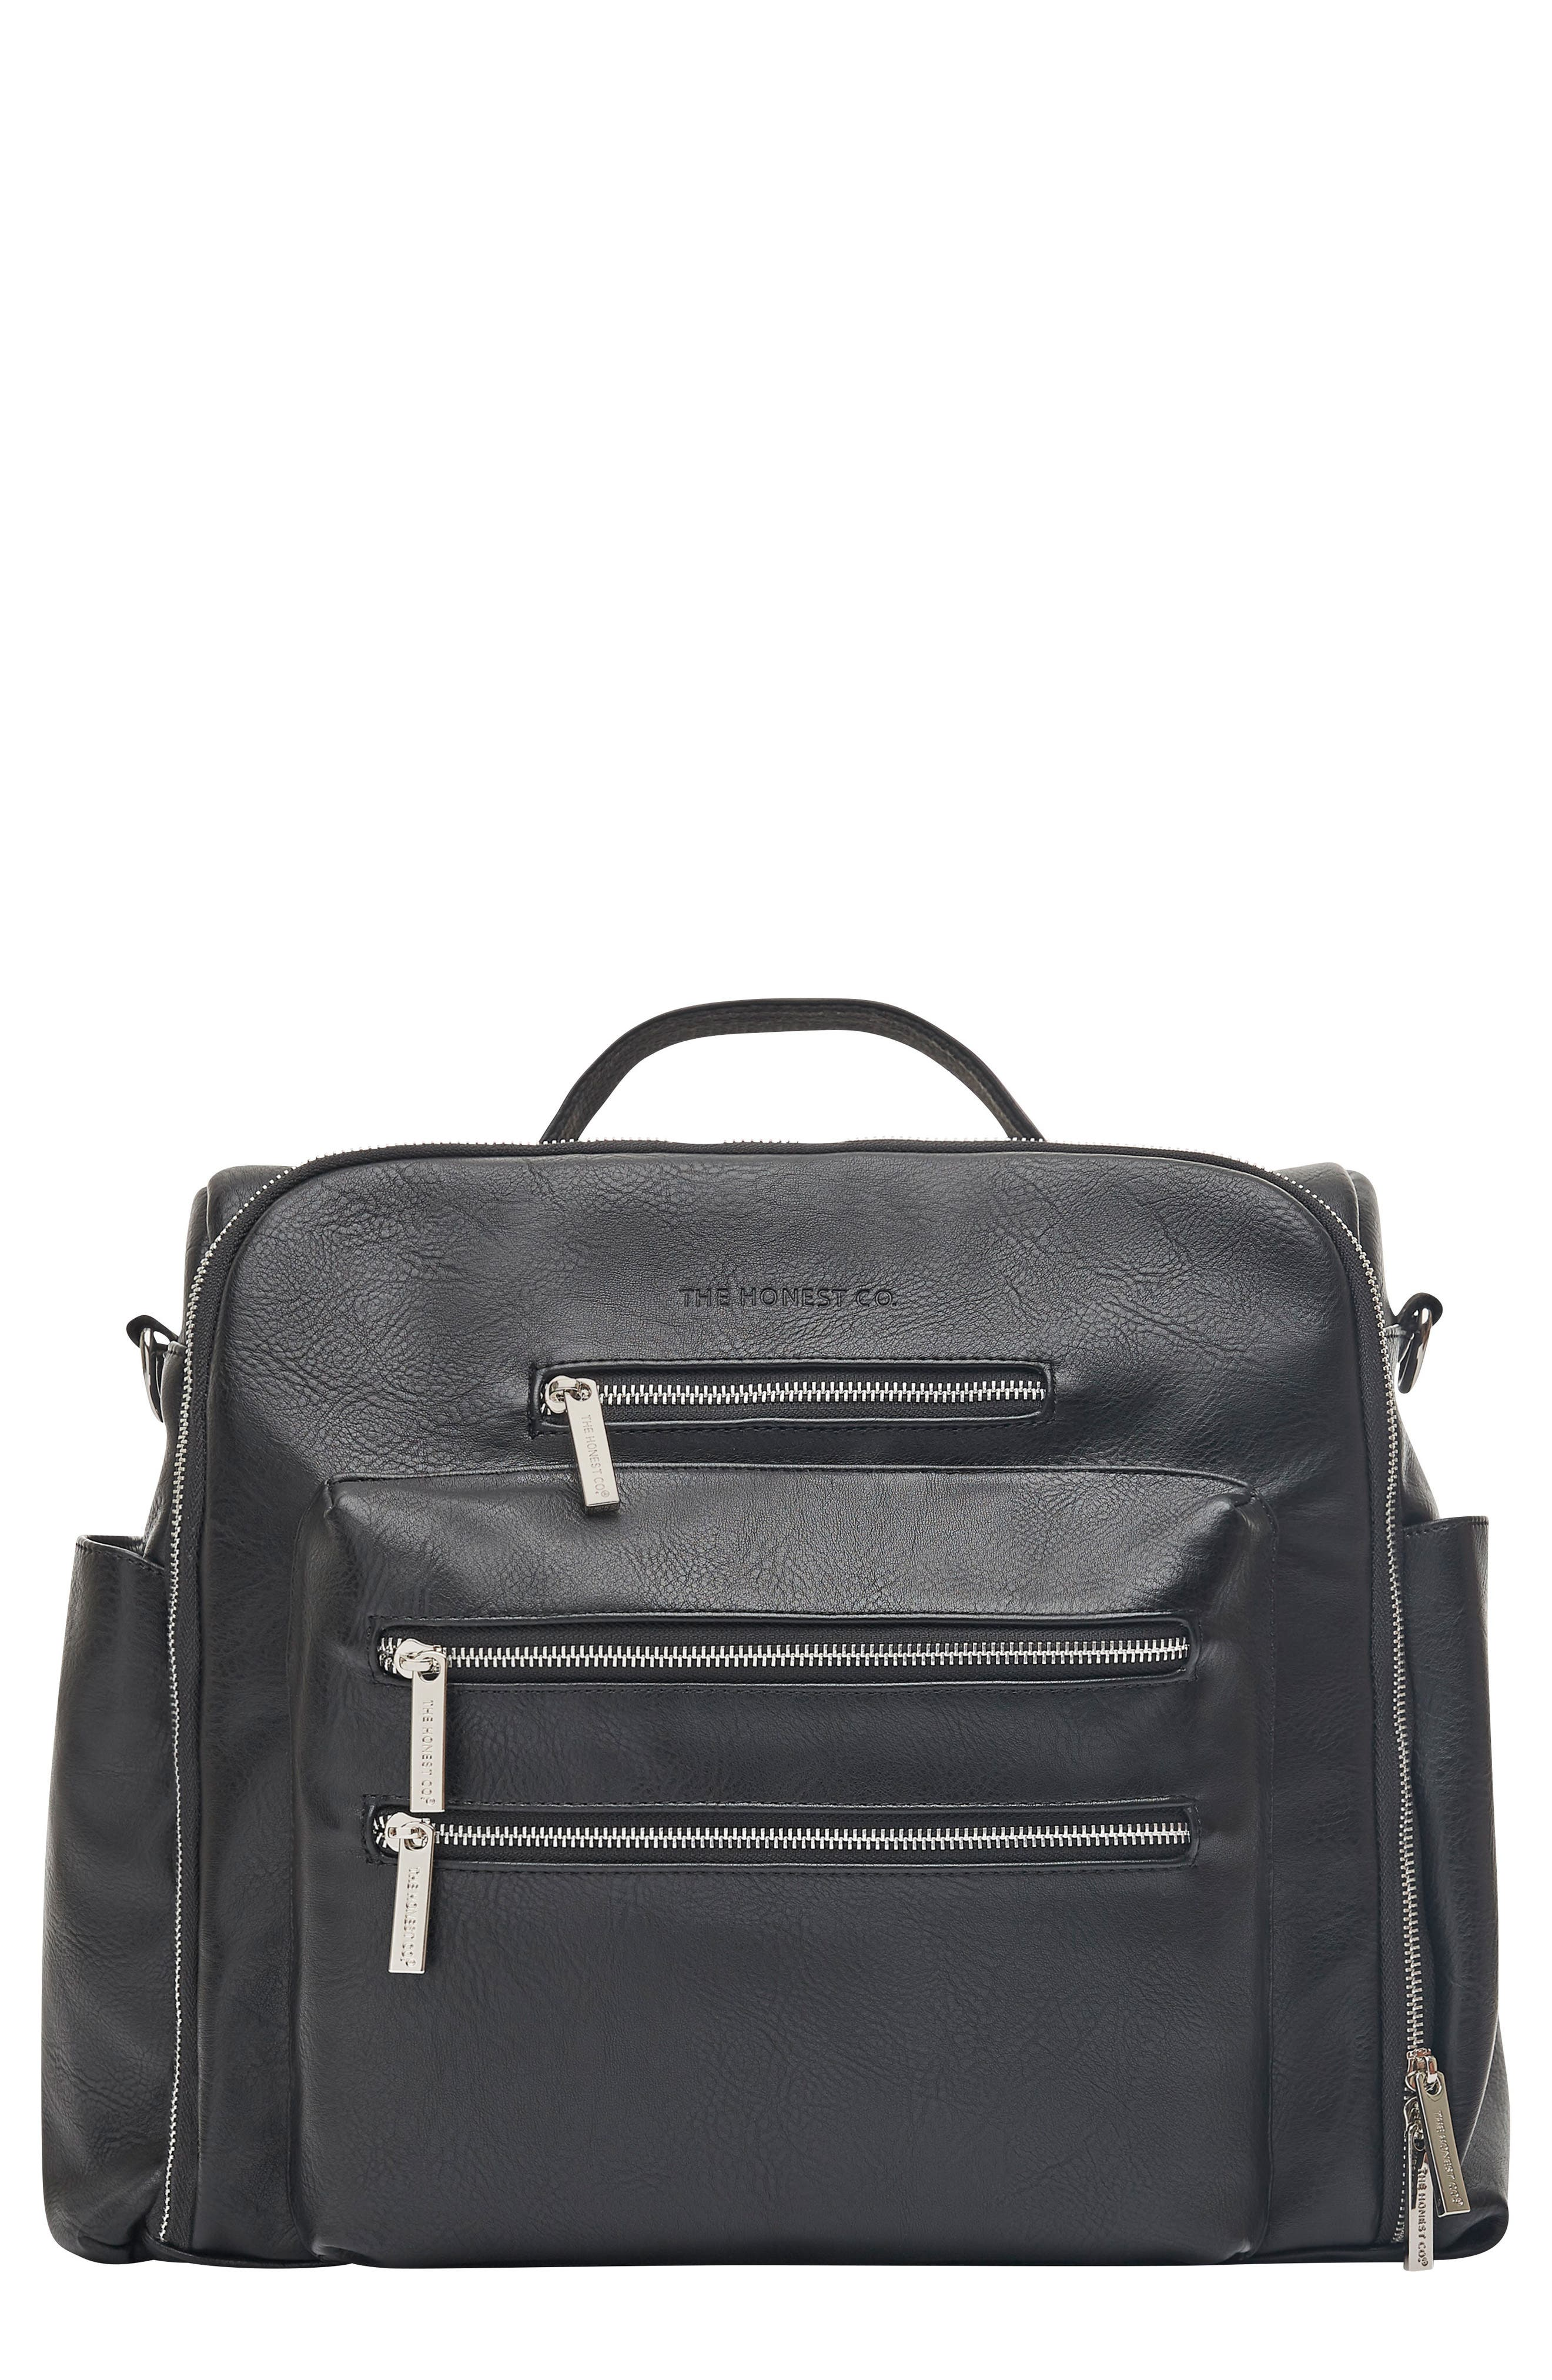 Cross Country Faux Leather Diaper Bag,                         Main,                         color, BLACK